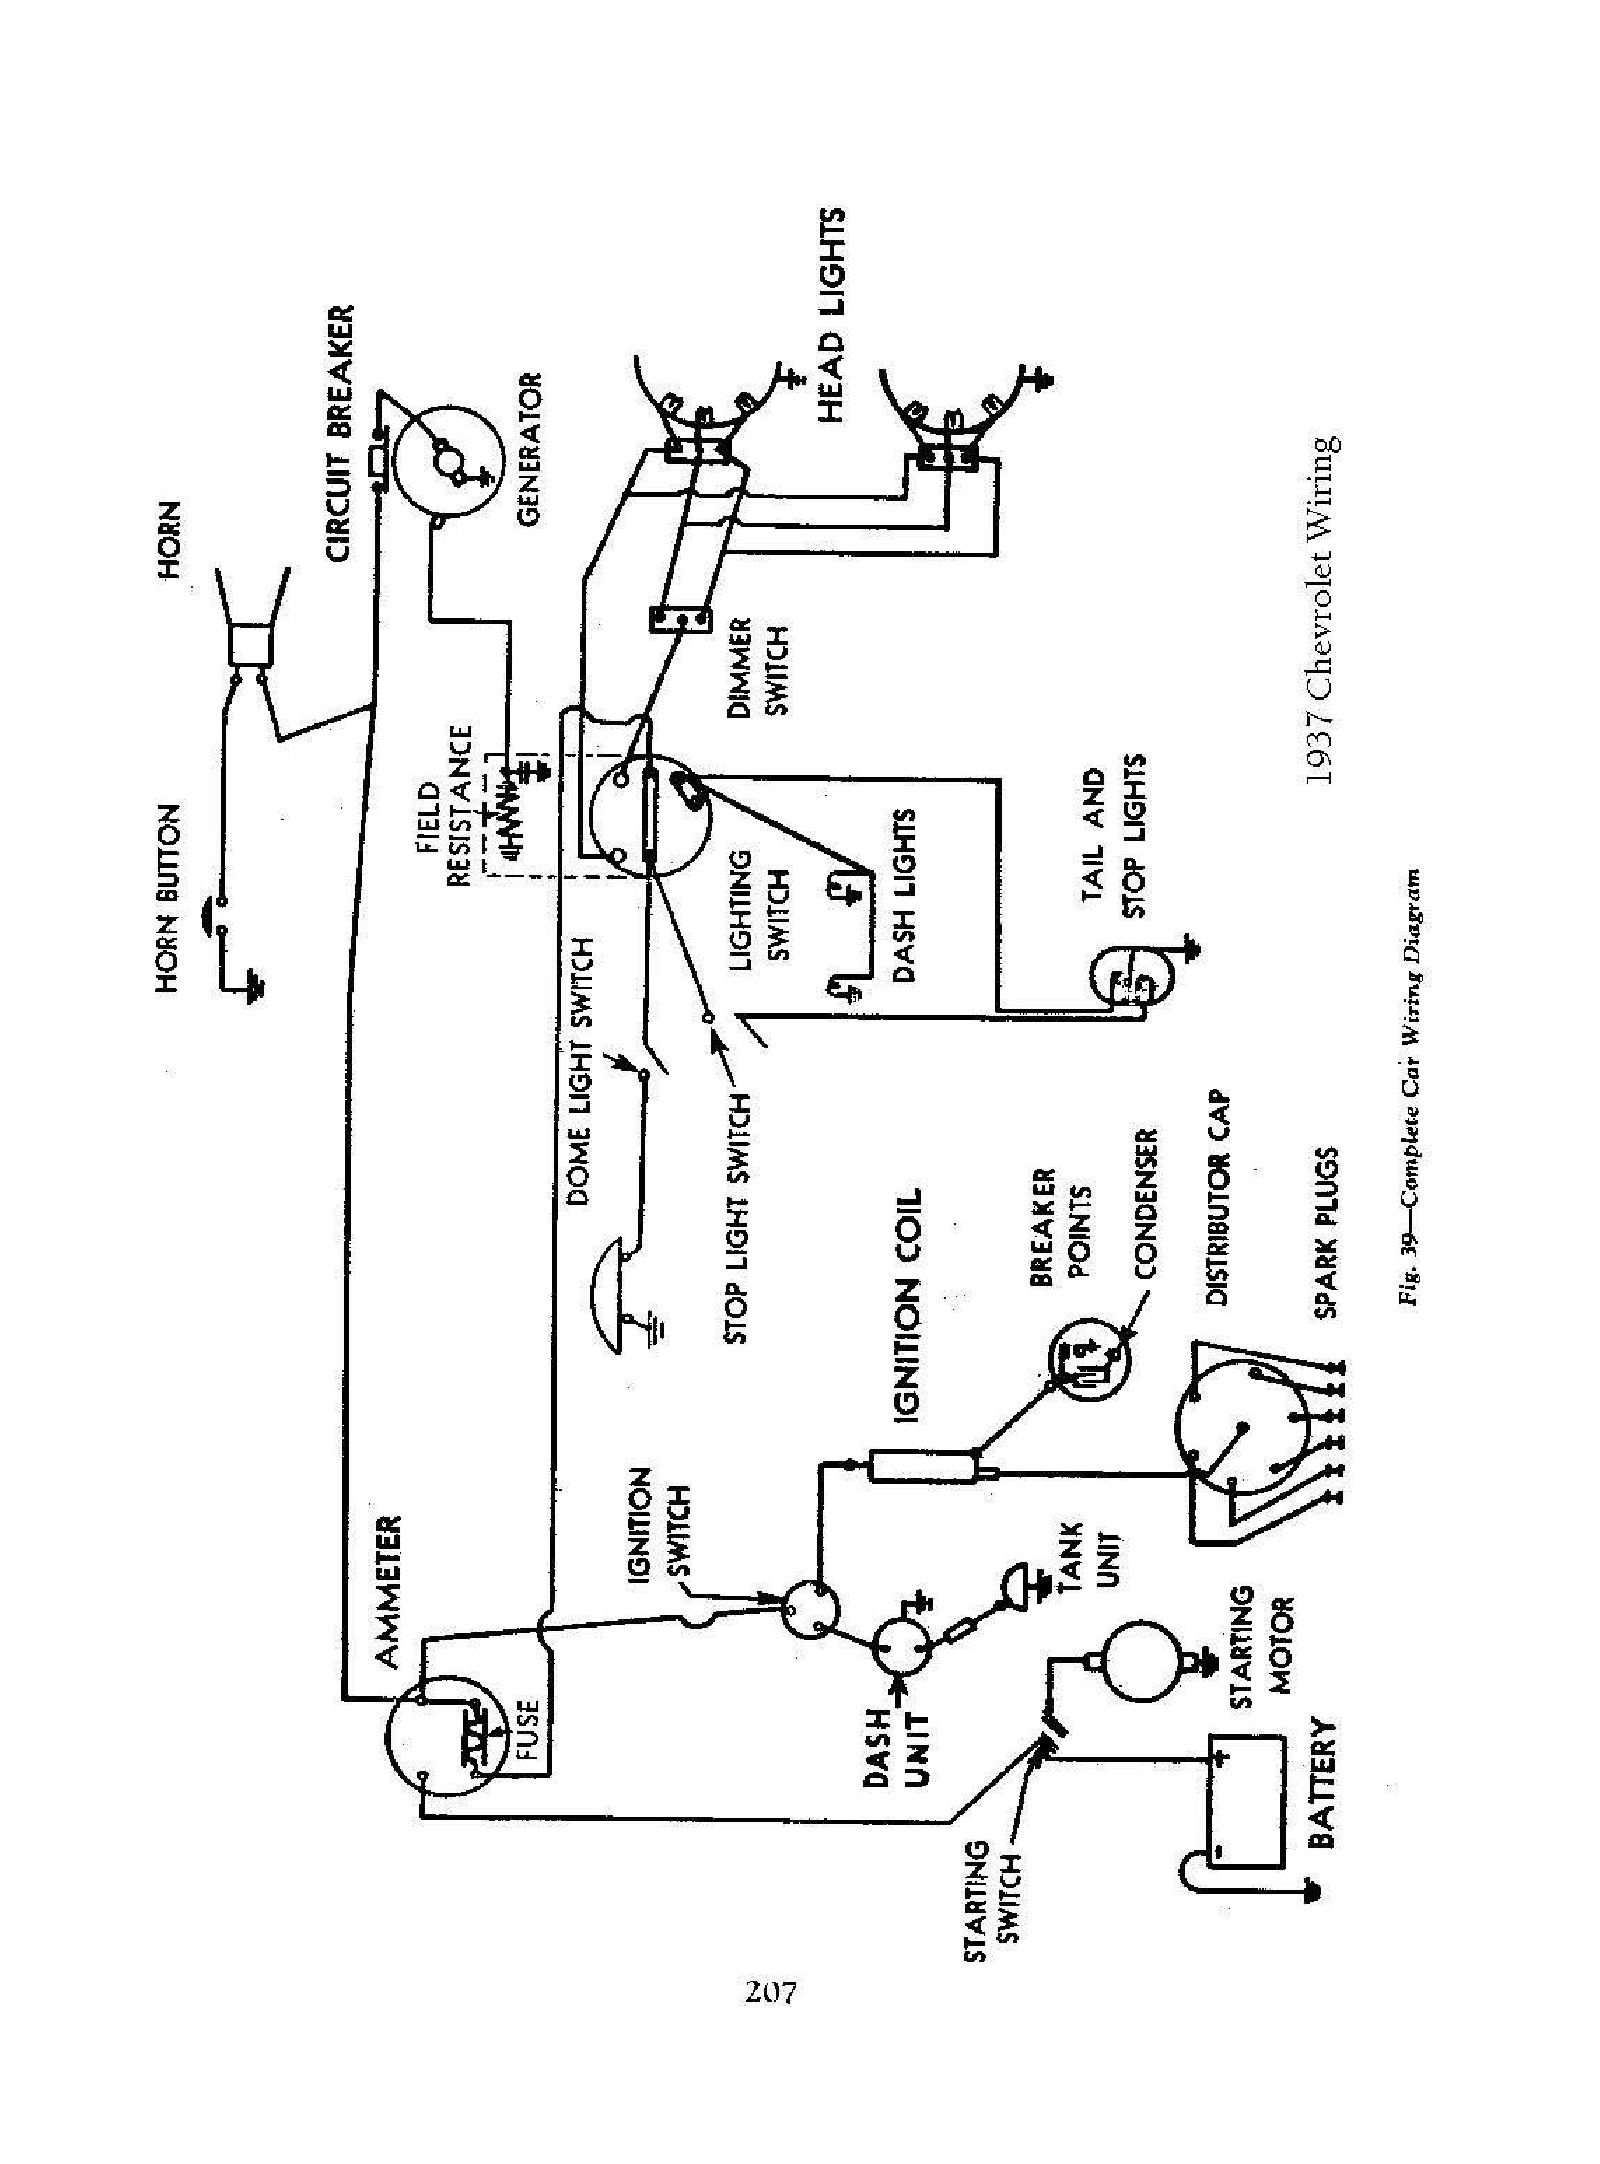 Car on 1955 chevy ignition switch wiring diagram